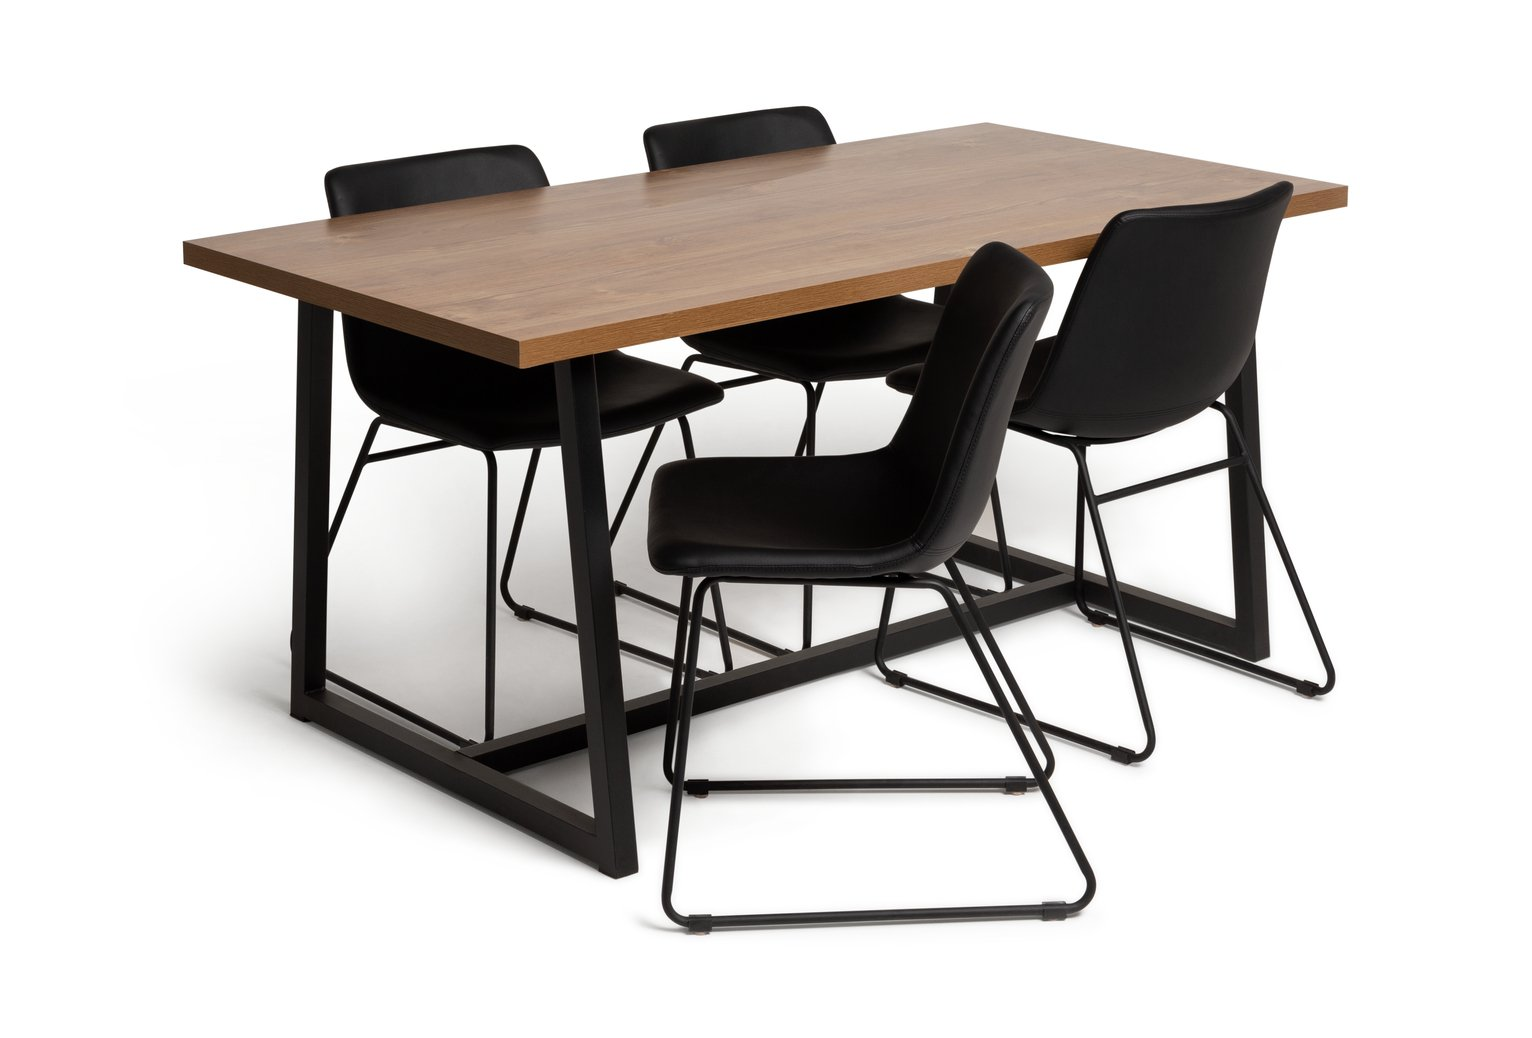 Habitat Nomad Wood Dining Table and 4 Joey Black Chairs